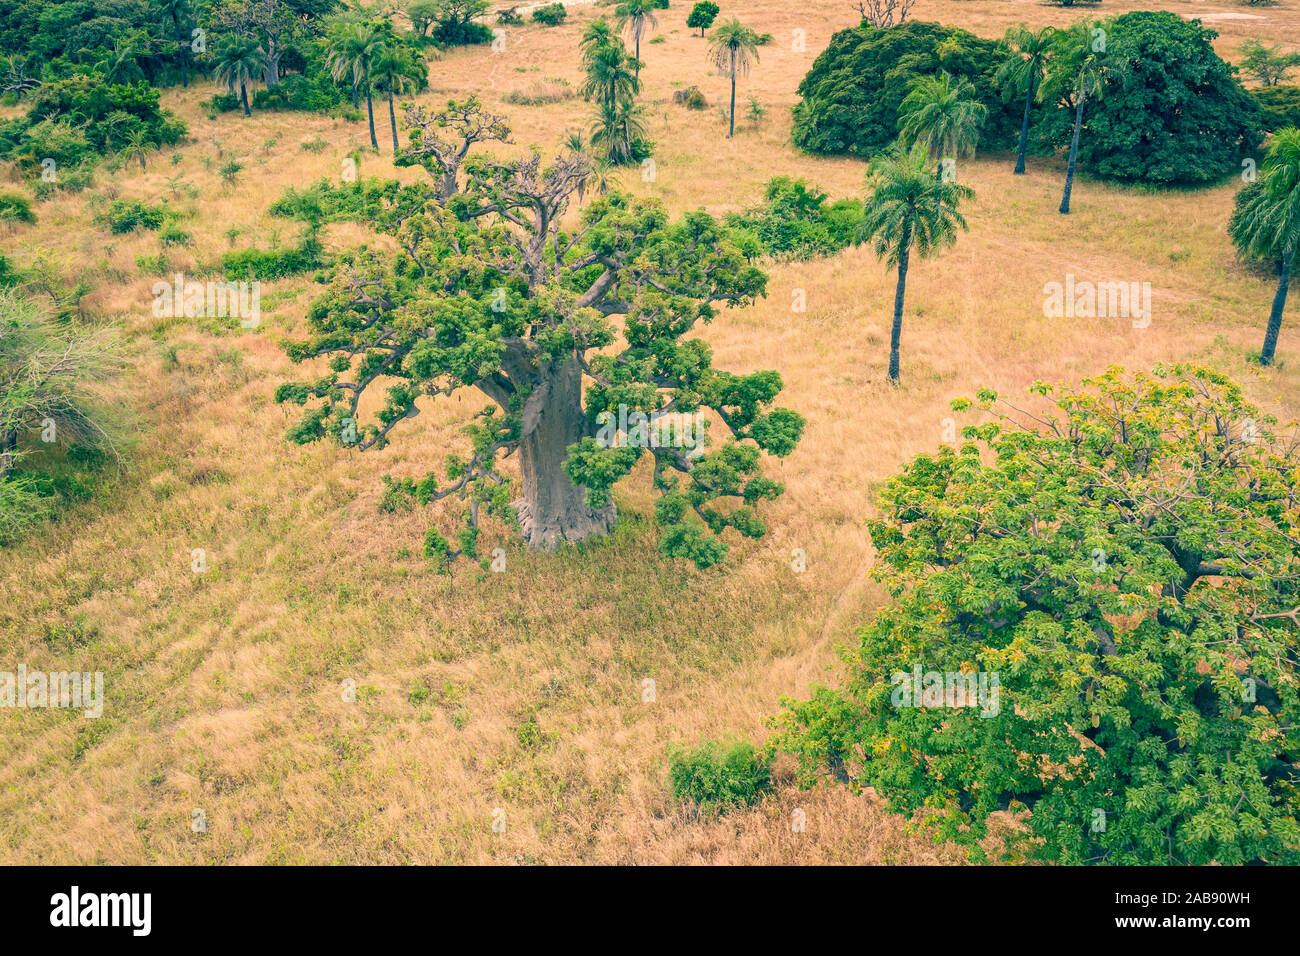 Aerial view of Baobab tree. Senegal. West Africa. Photo made by drone from above. Stock Photo